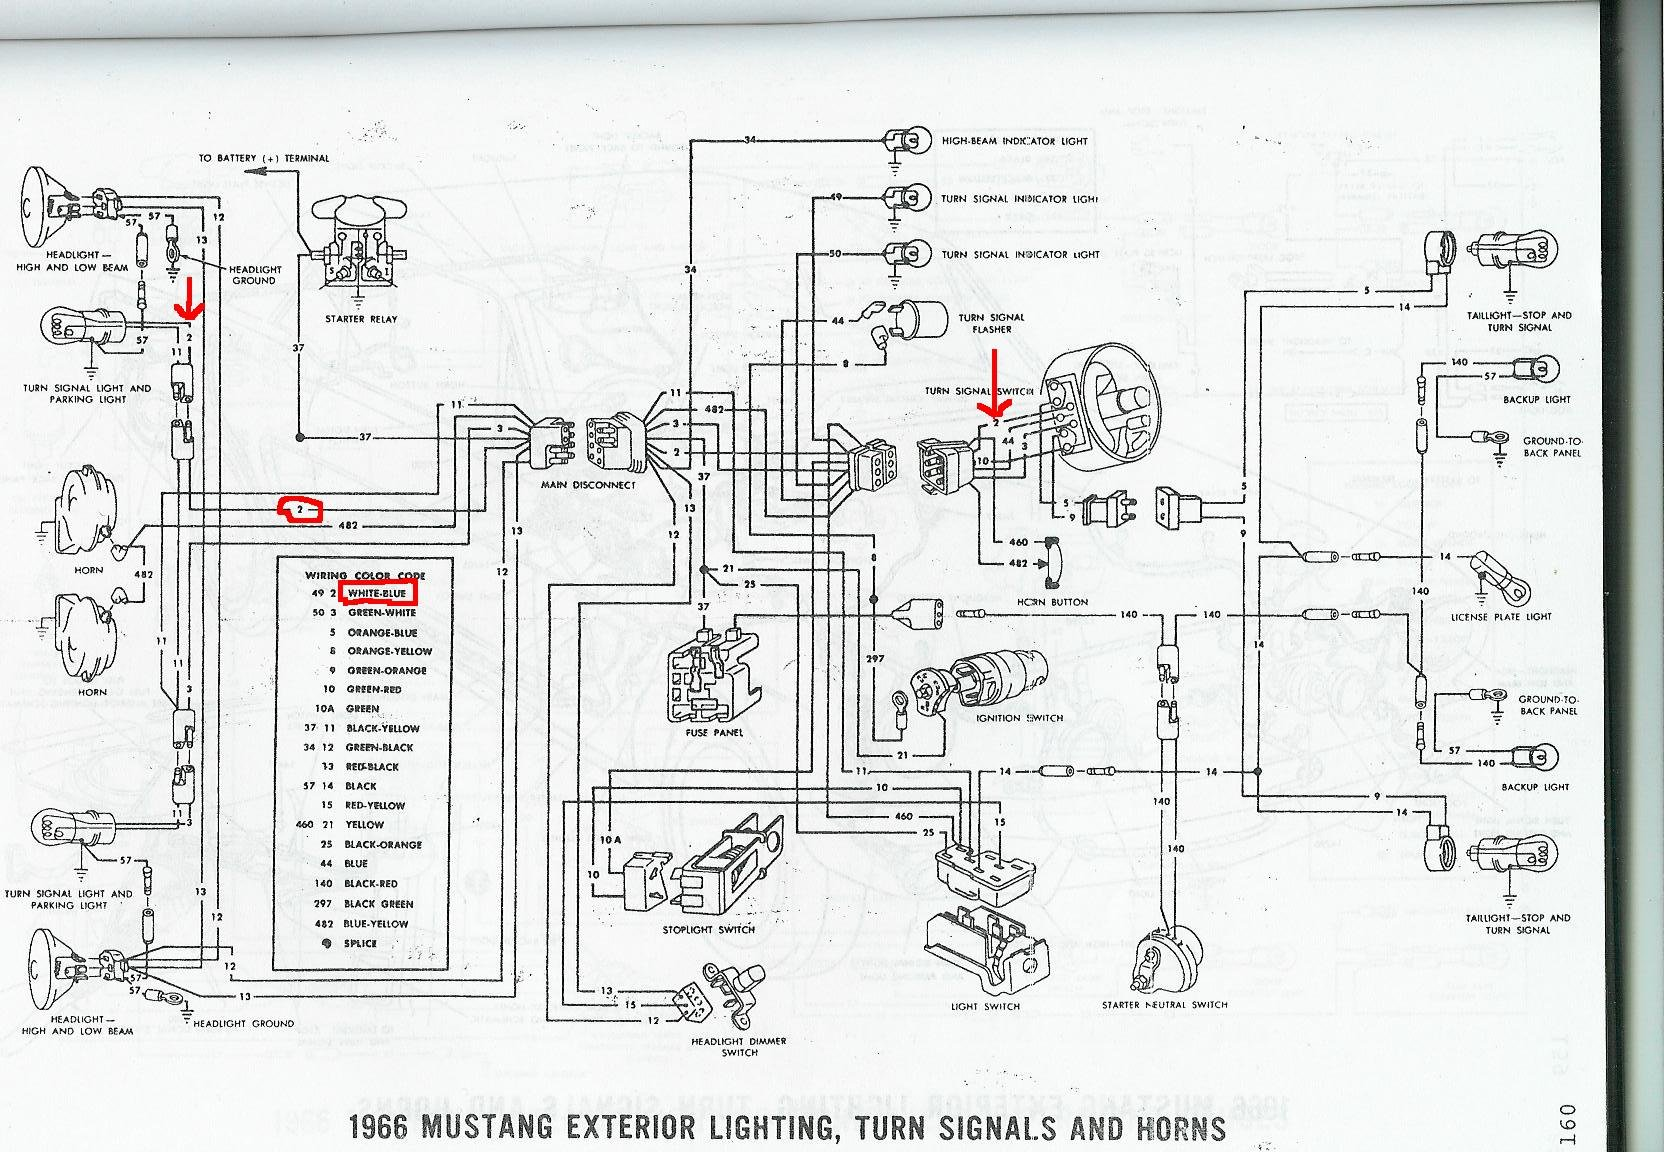 Radio Wiring Diagram Additionally 1969 Mercury Cougar Wiring Diagram